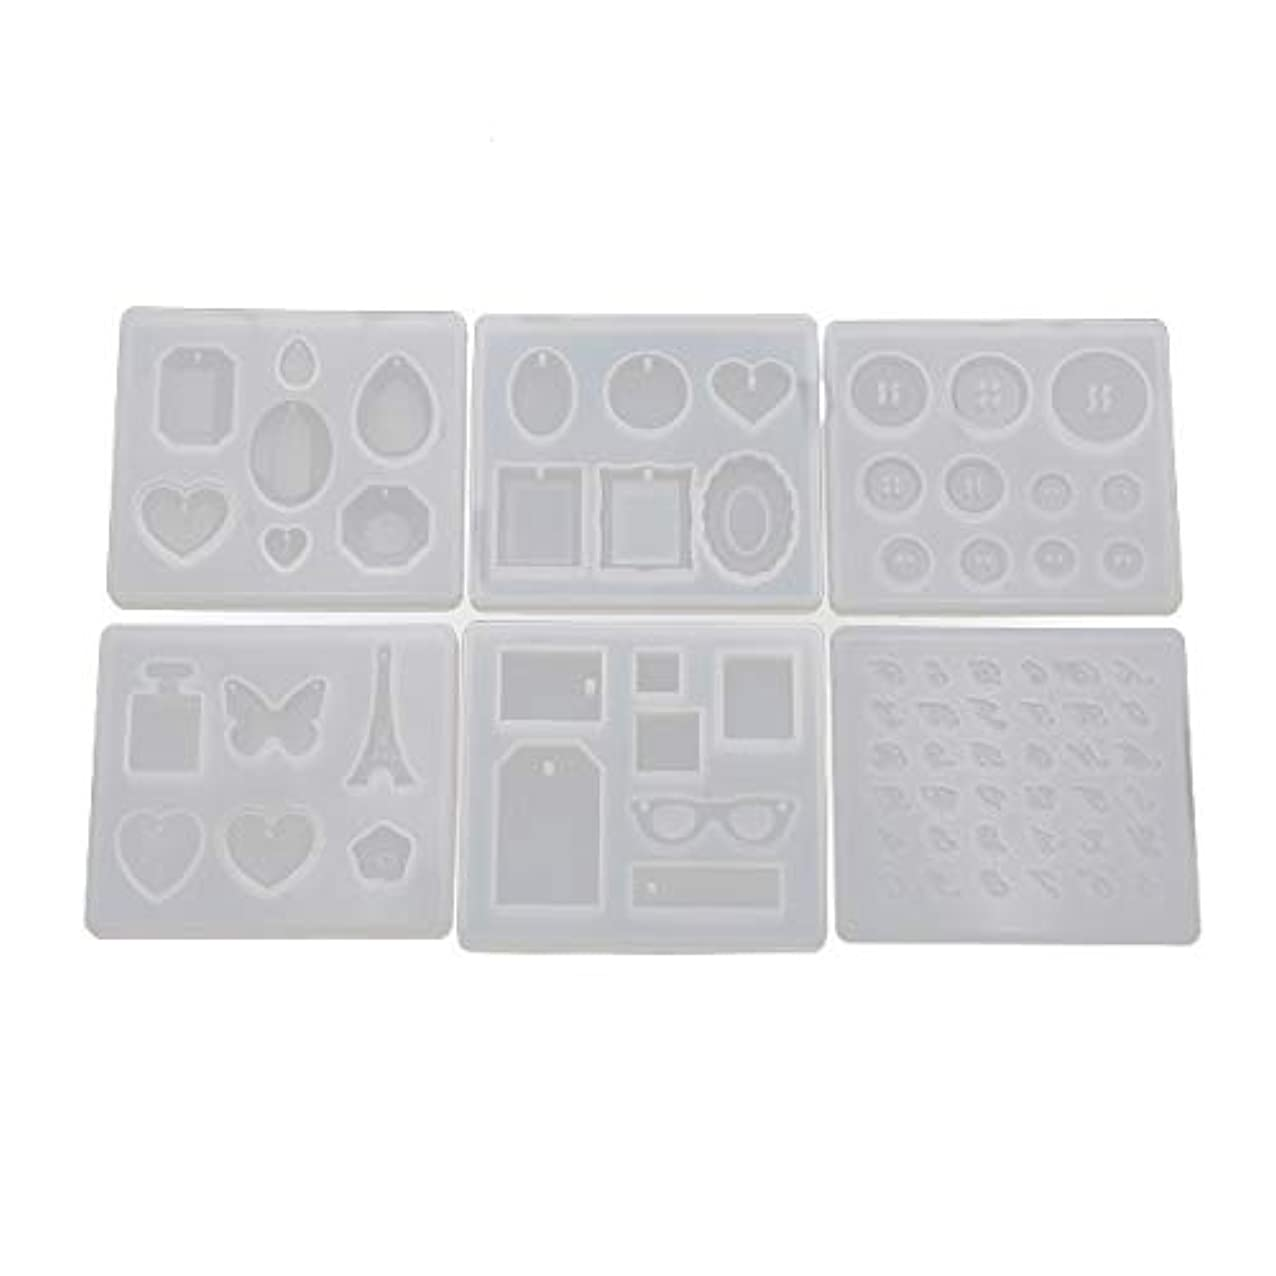 Yalulu 6Pcs Multi Style Necklace Silicone Mold Button Number Letter Resin Silicone Mould Handmade DIY Jewelry Pendant Making Epoxy Resin Molds puvusgilffzge094